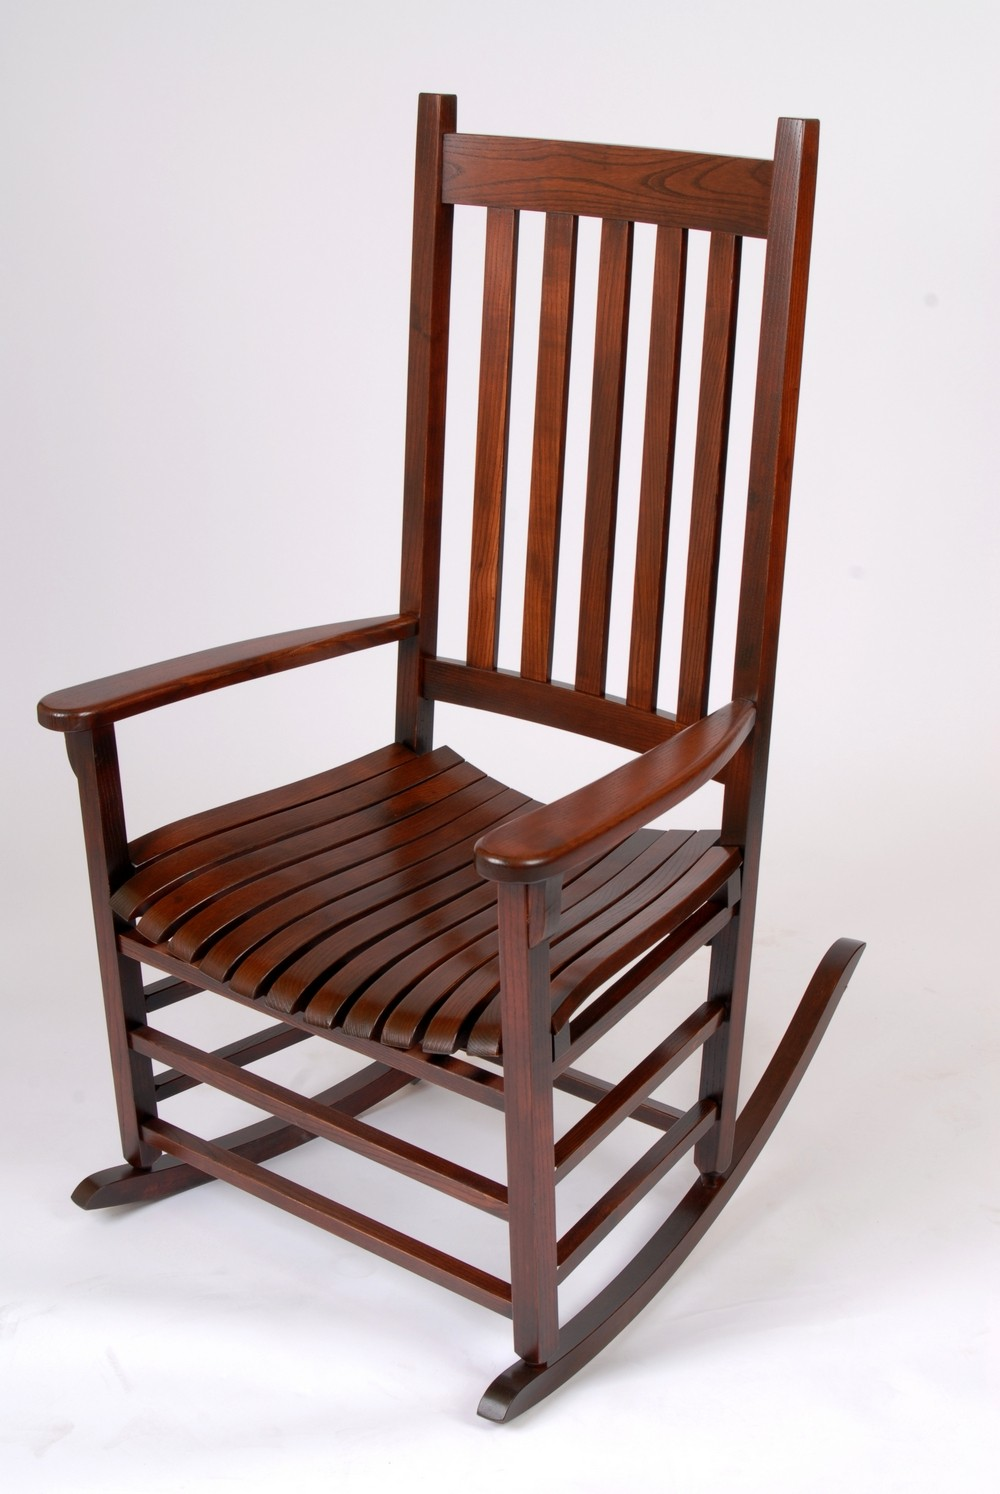 Mission Style Rocking Chair: History and Designs - HomesFeed